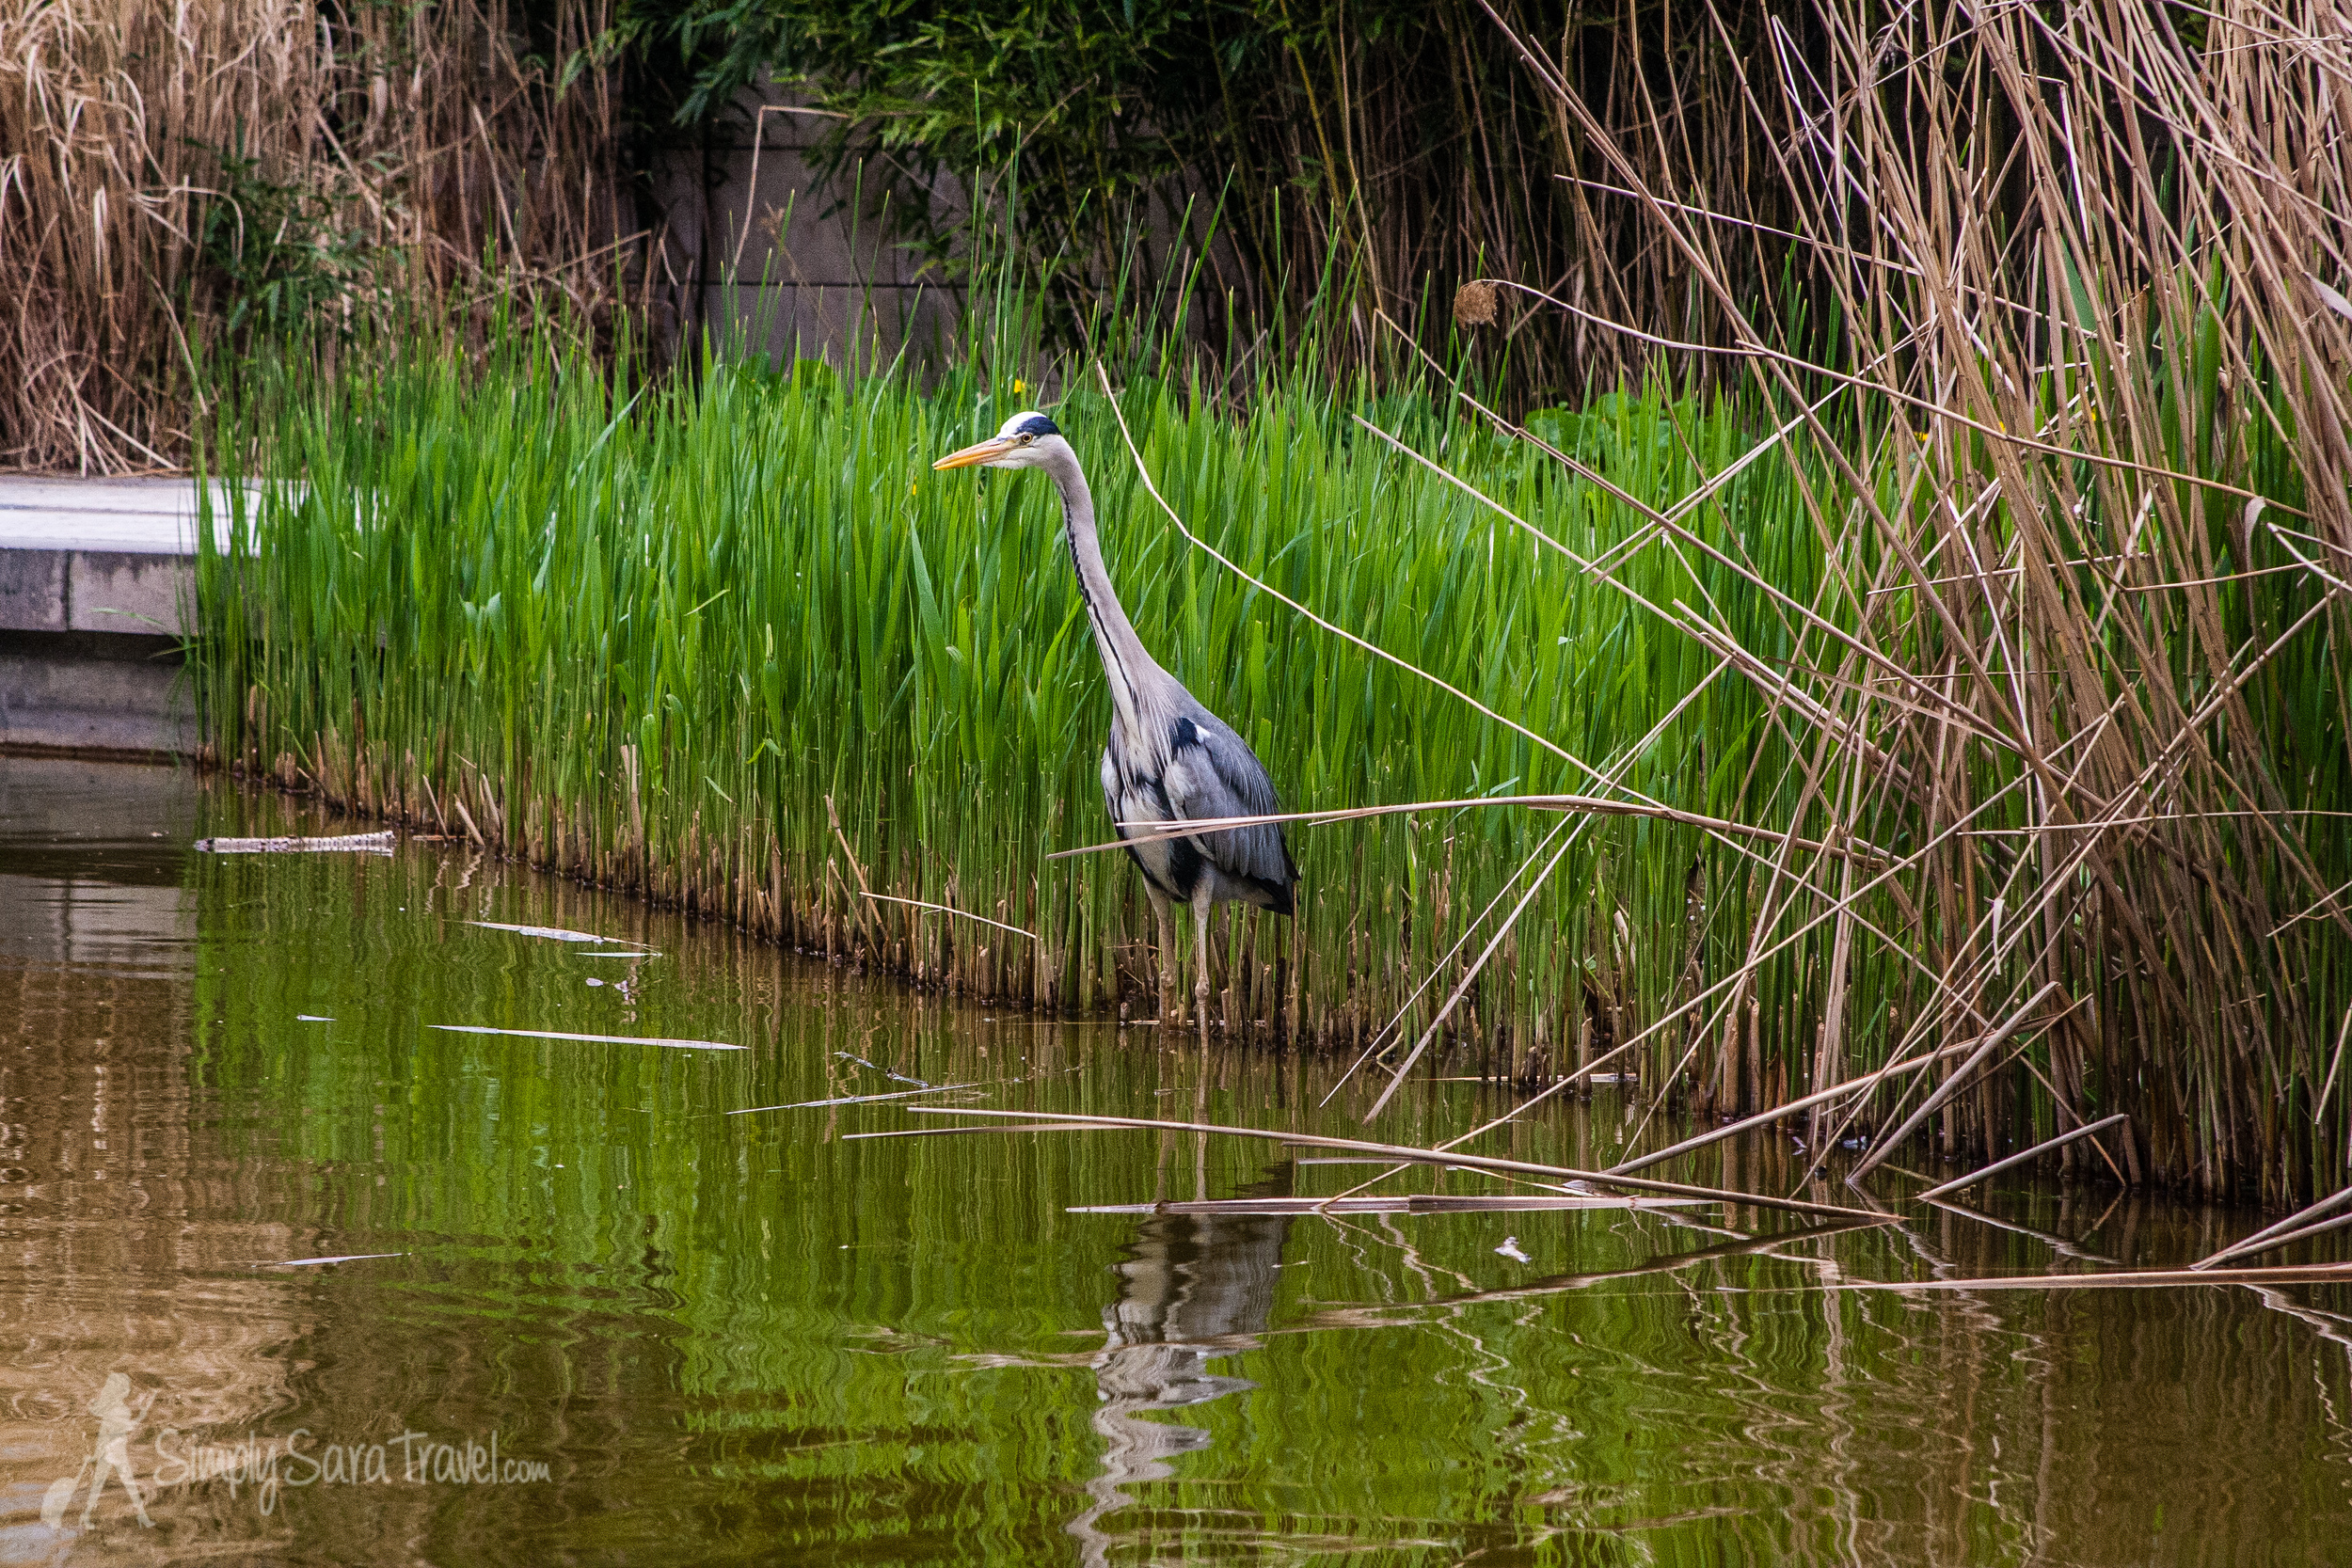 Heron at the lake in Parc de Bercy